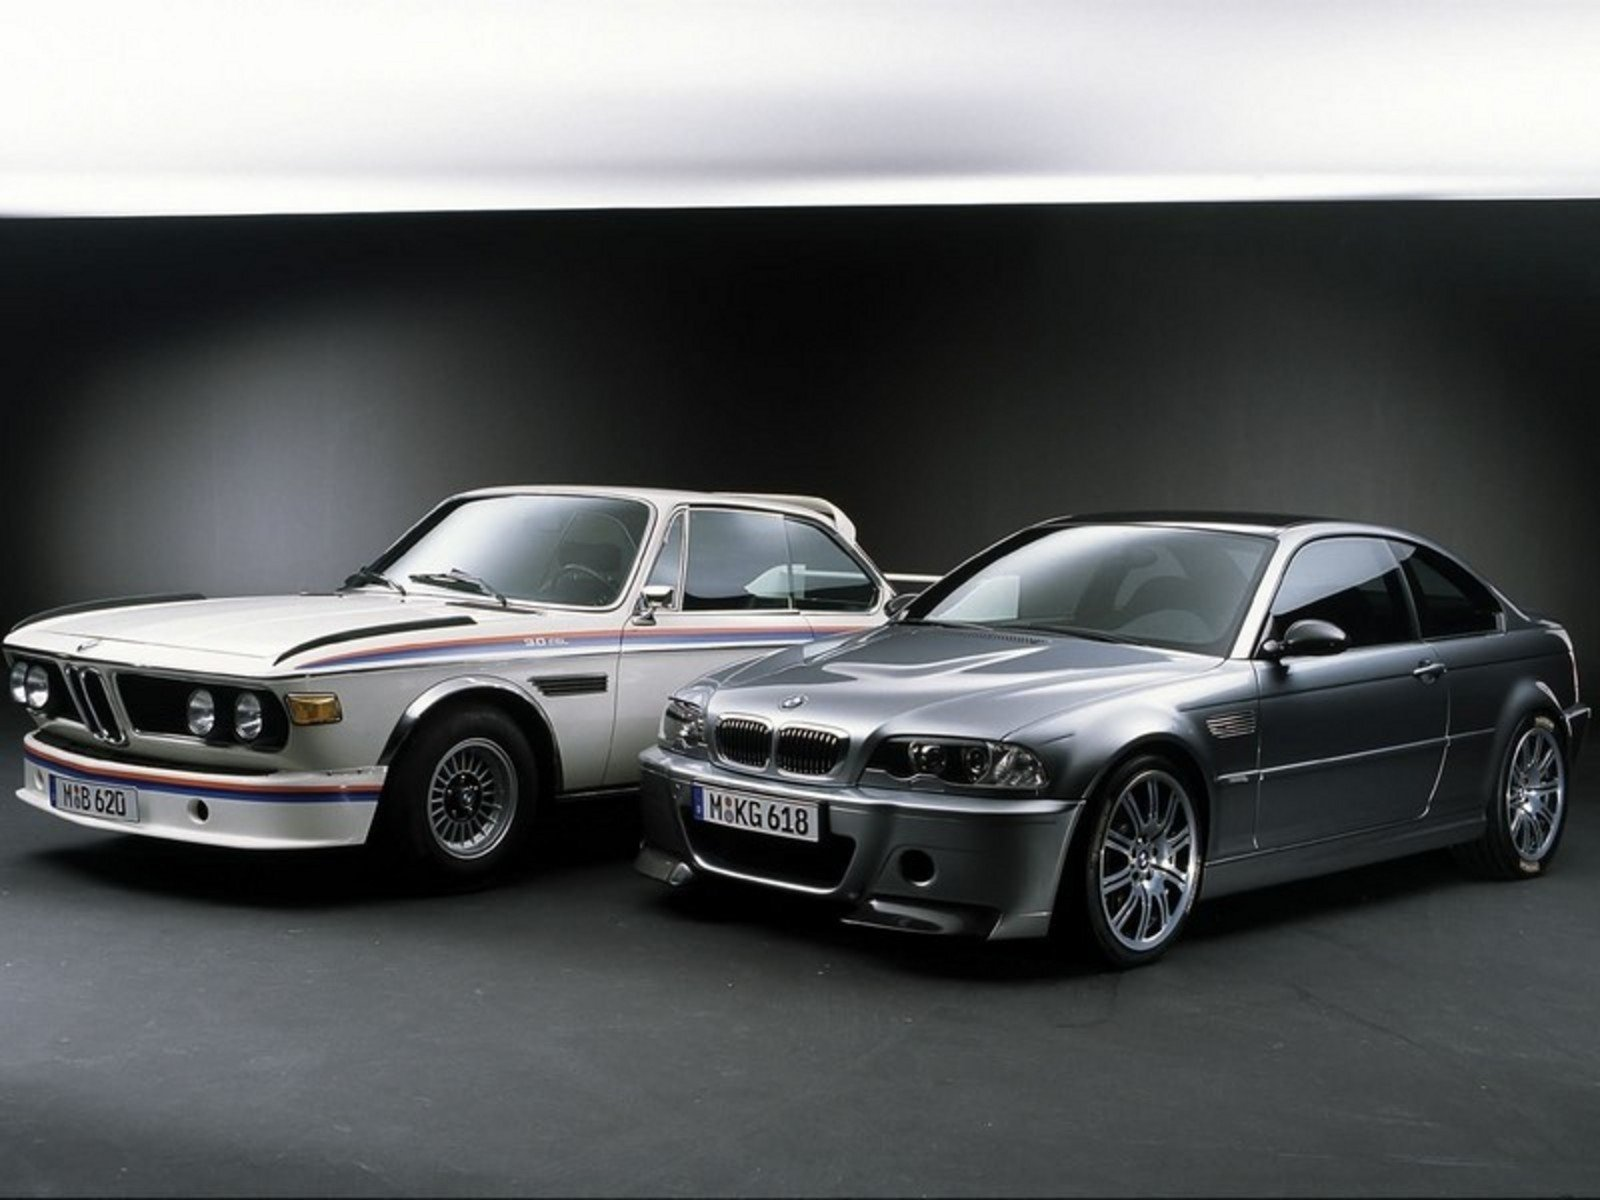 2000 bmw e46 m3 review picture 84223 car review top. Black Bedroom Furniture Sets. Home Design Ideas